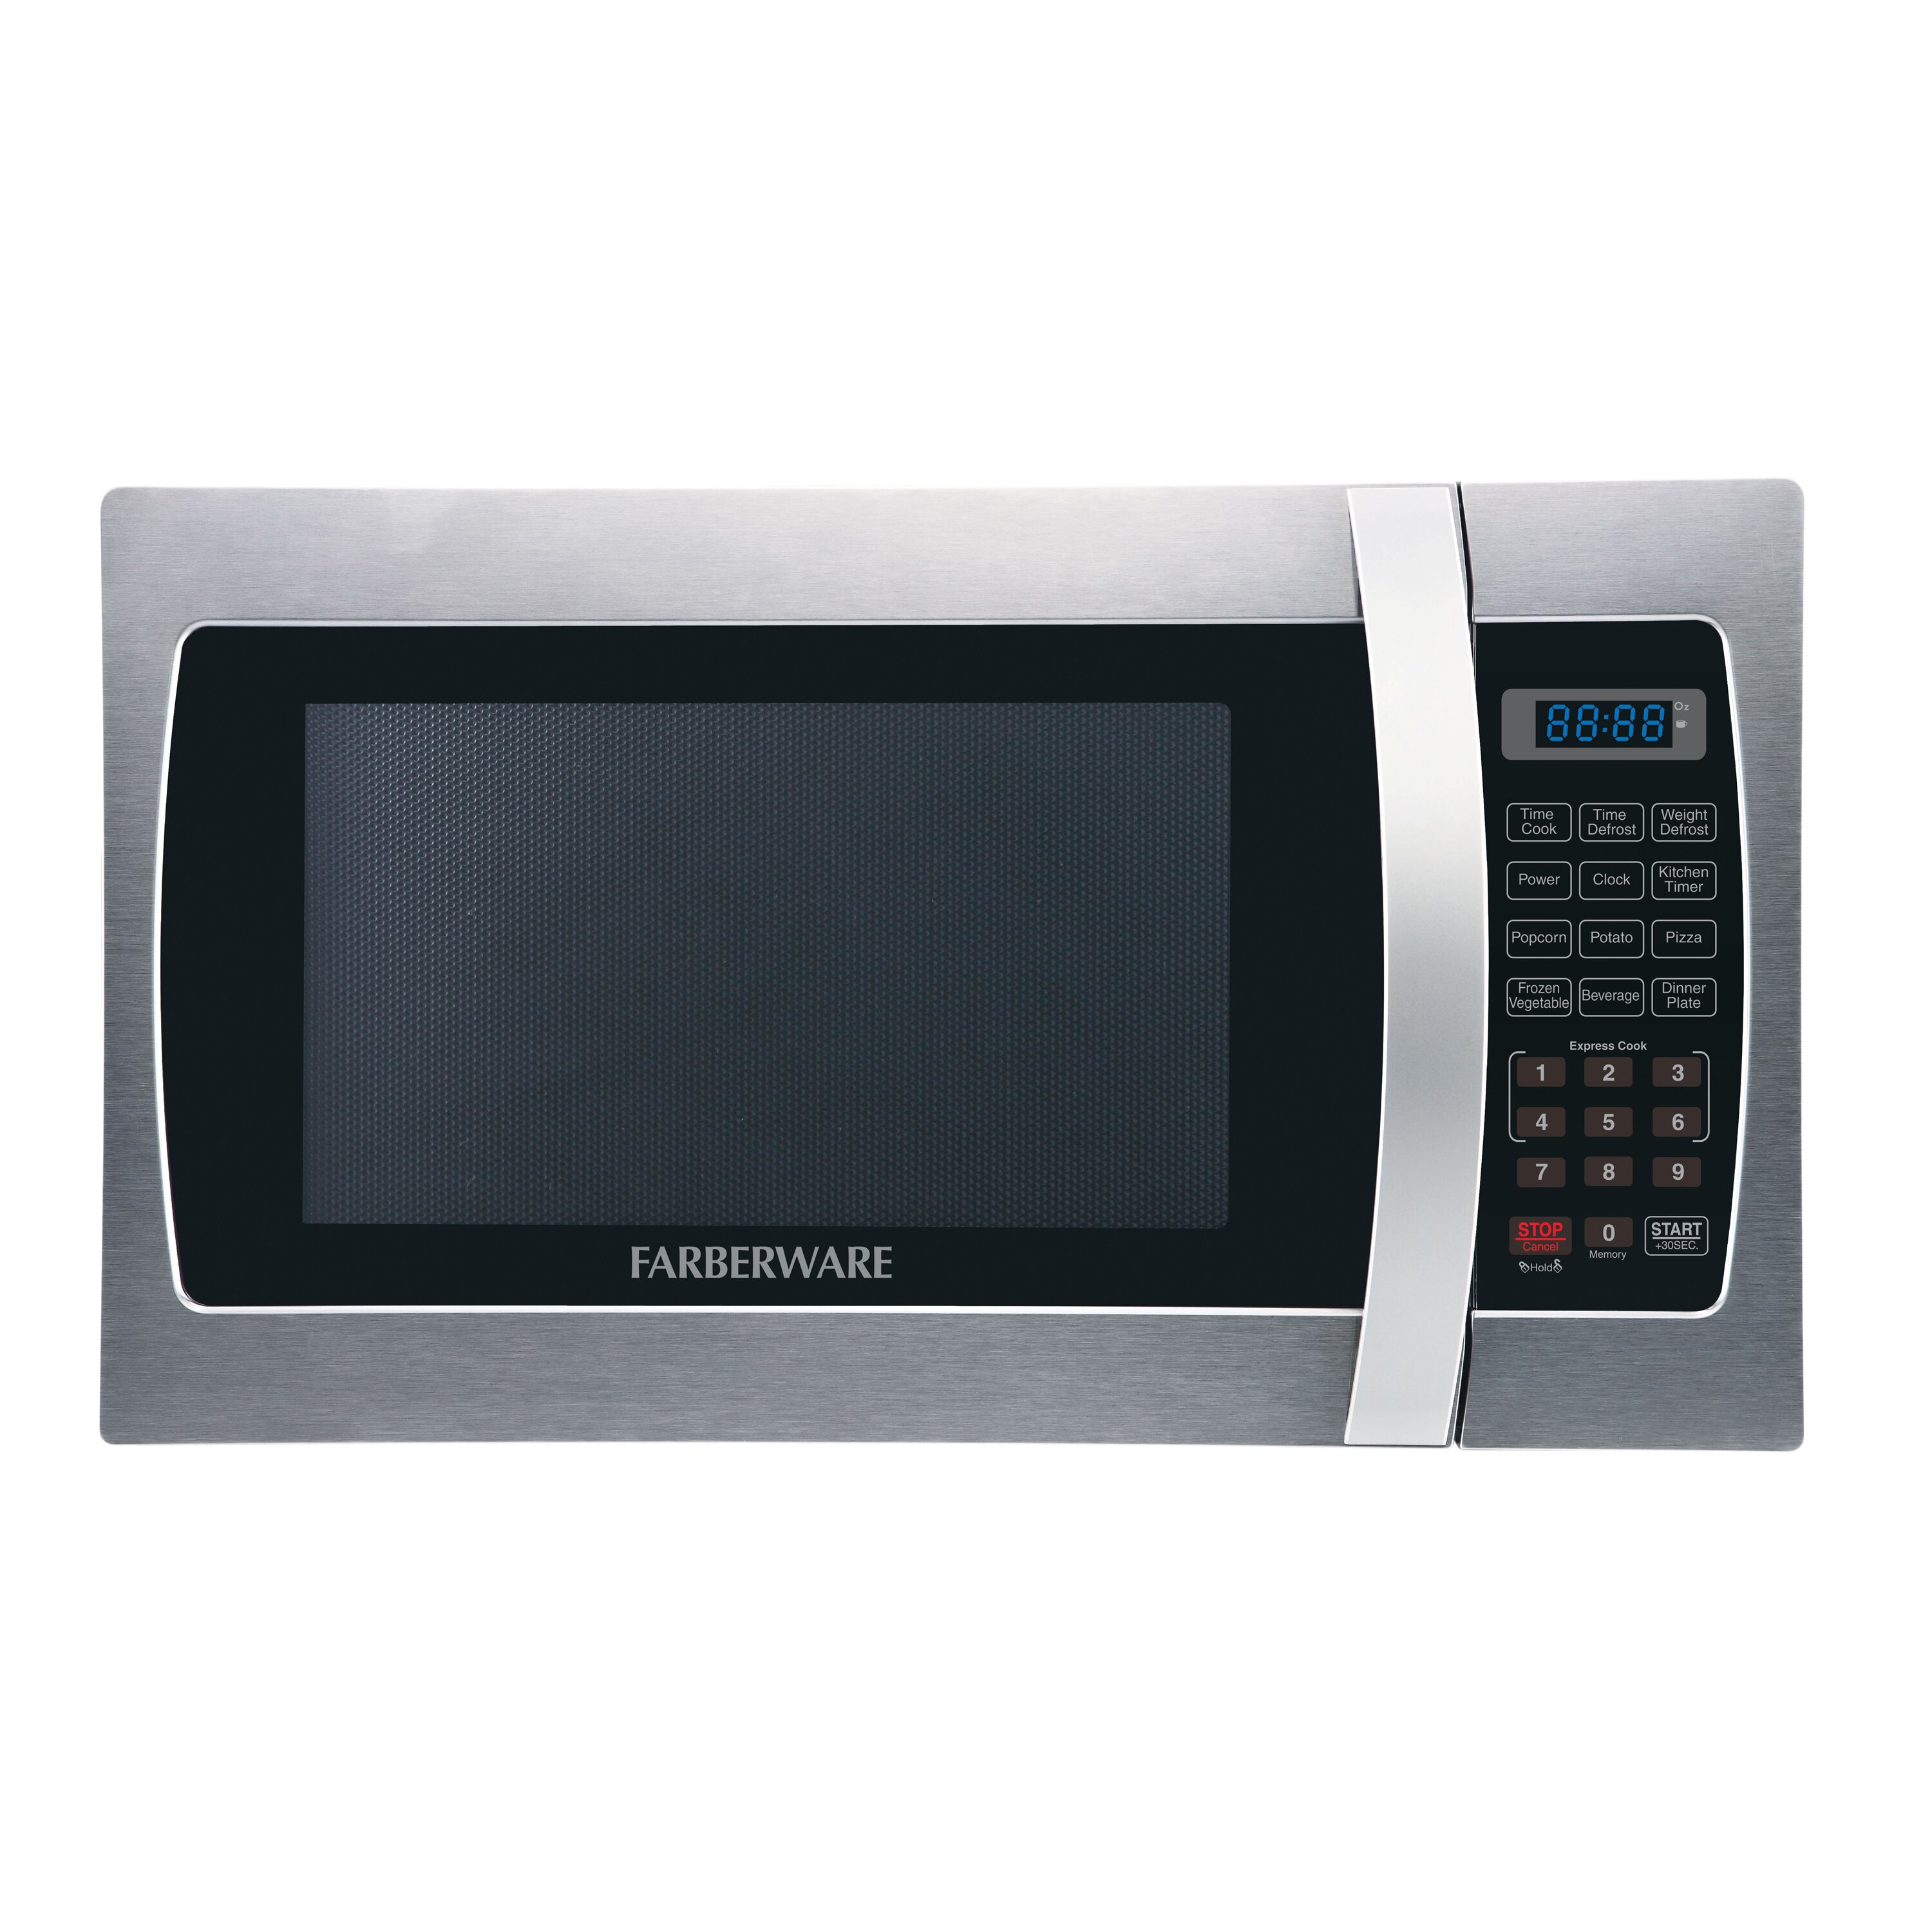 First Countertop Microwave : Professional 1.3 Cu. Ft. 1000W Countertop Microwave Oven by Farberware